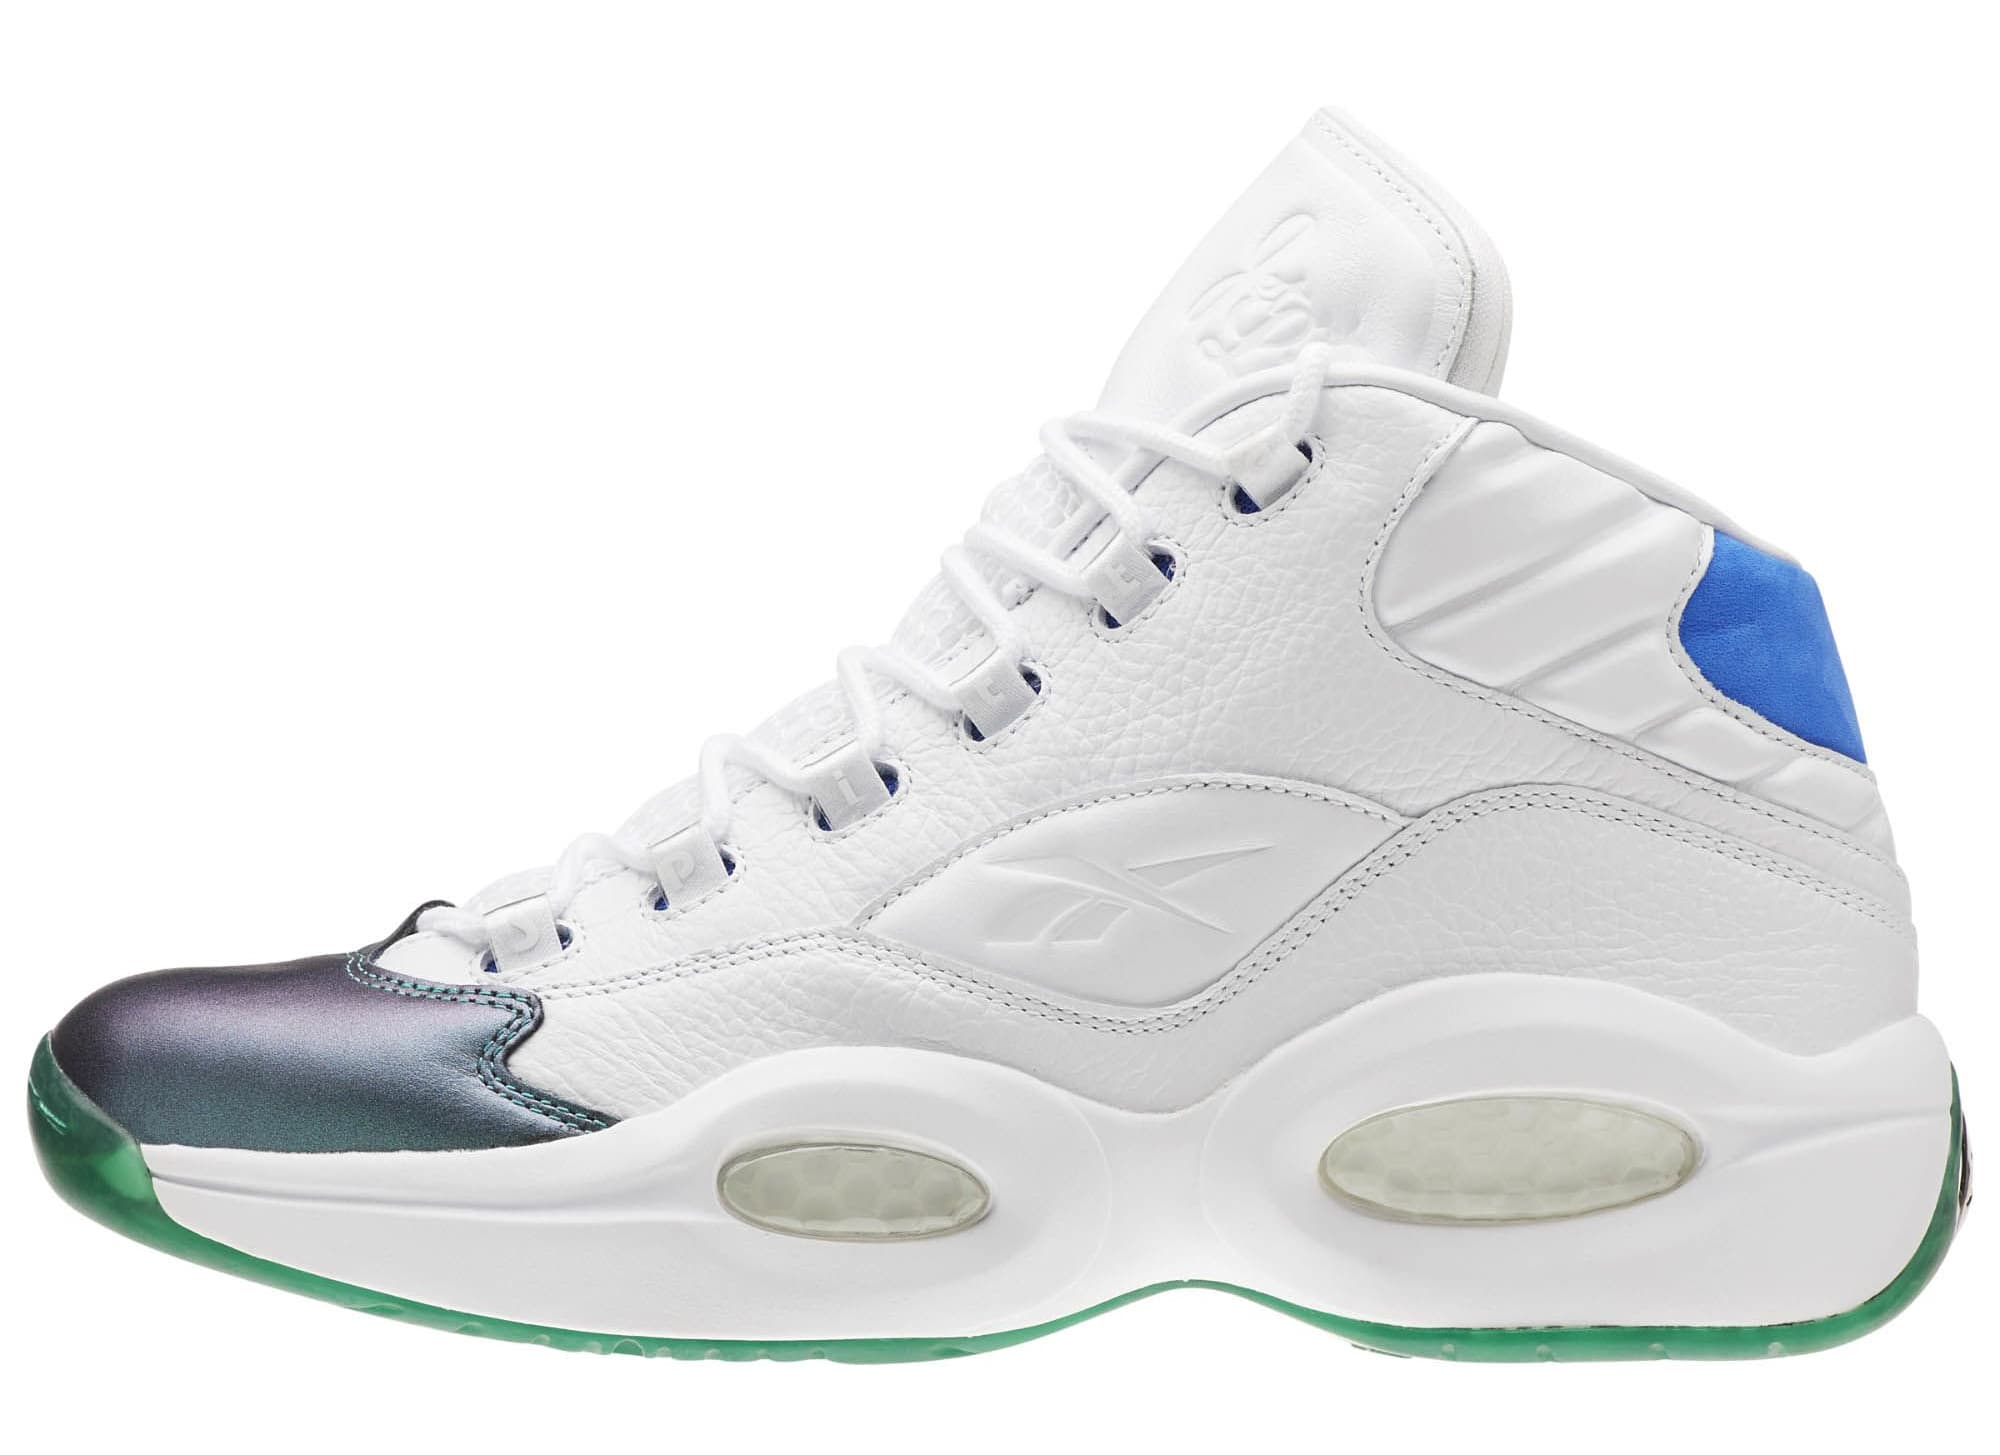 Currensy x Reebok Question Mid 'Jet Life' CN3671 (Medial)